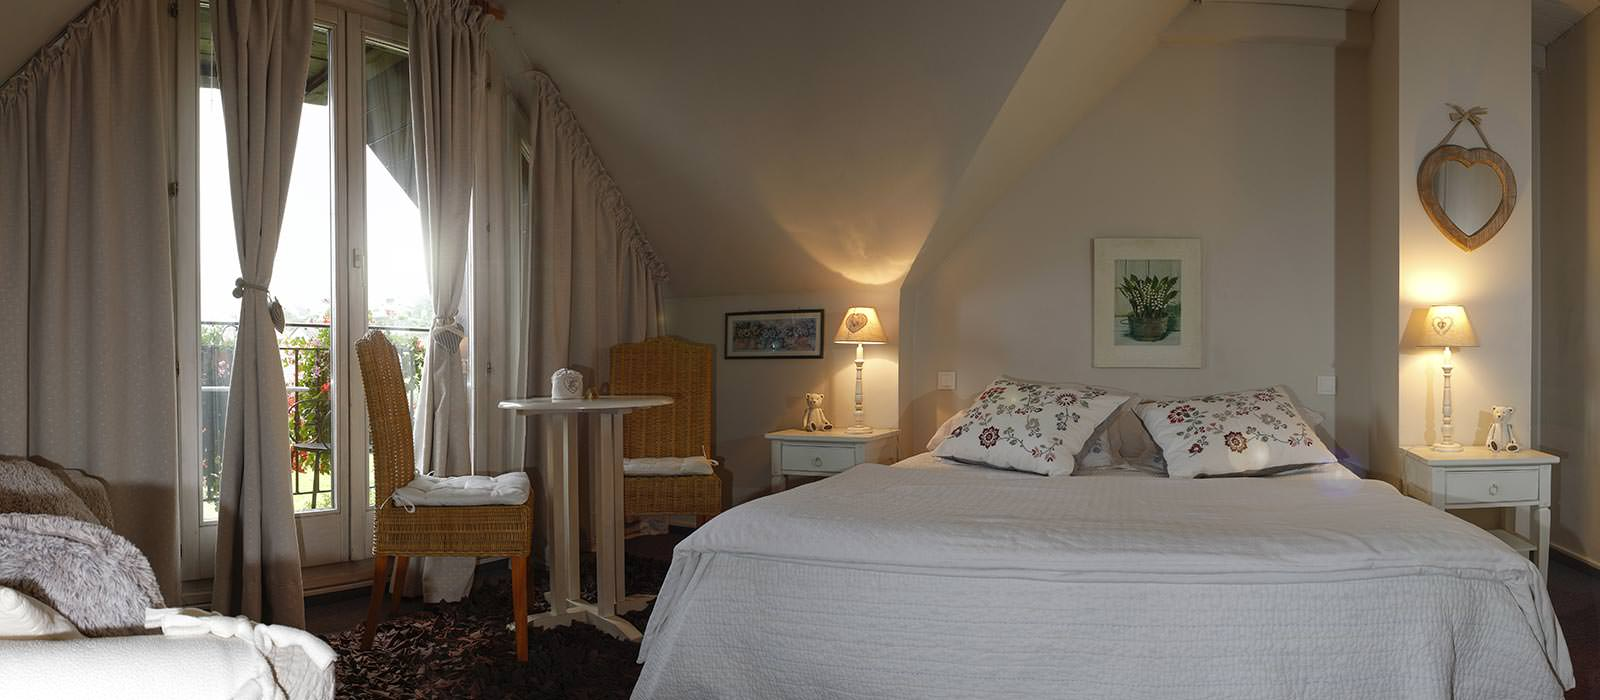 Chambre Hote Alsace Bed Breakfast Guest Room Bellevue Alsace France Bellevue